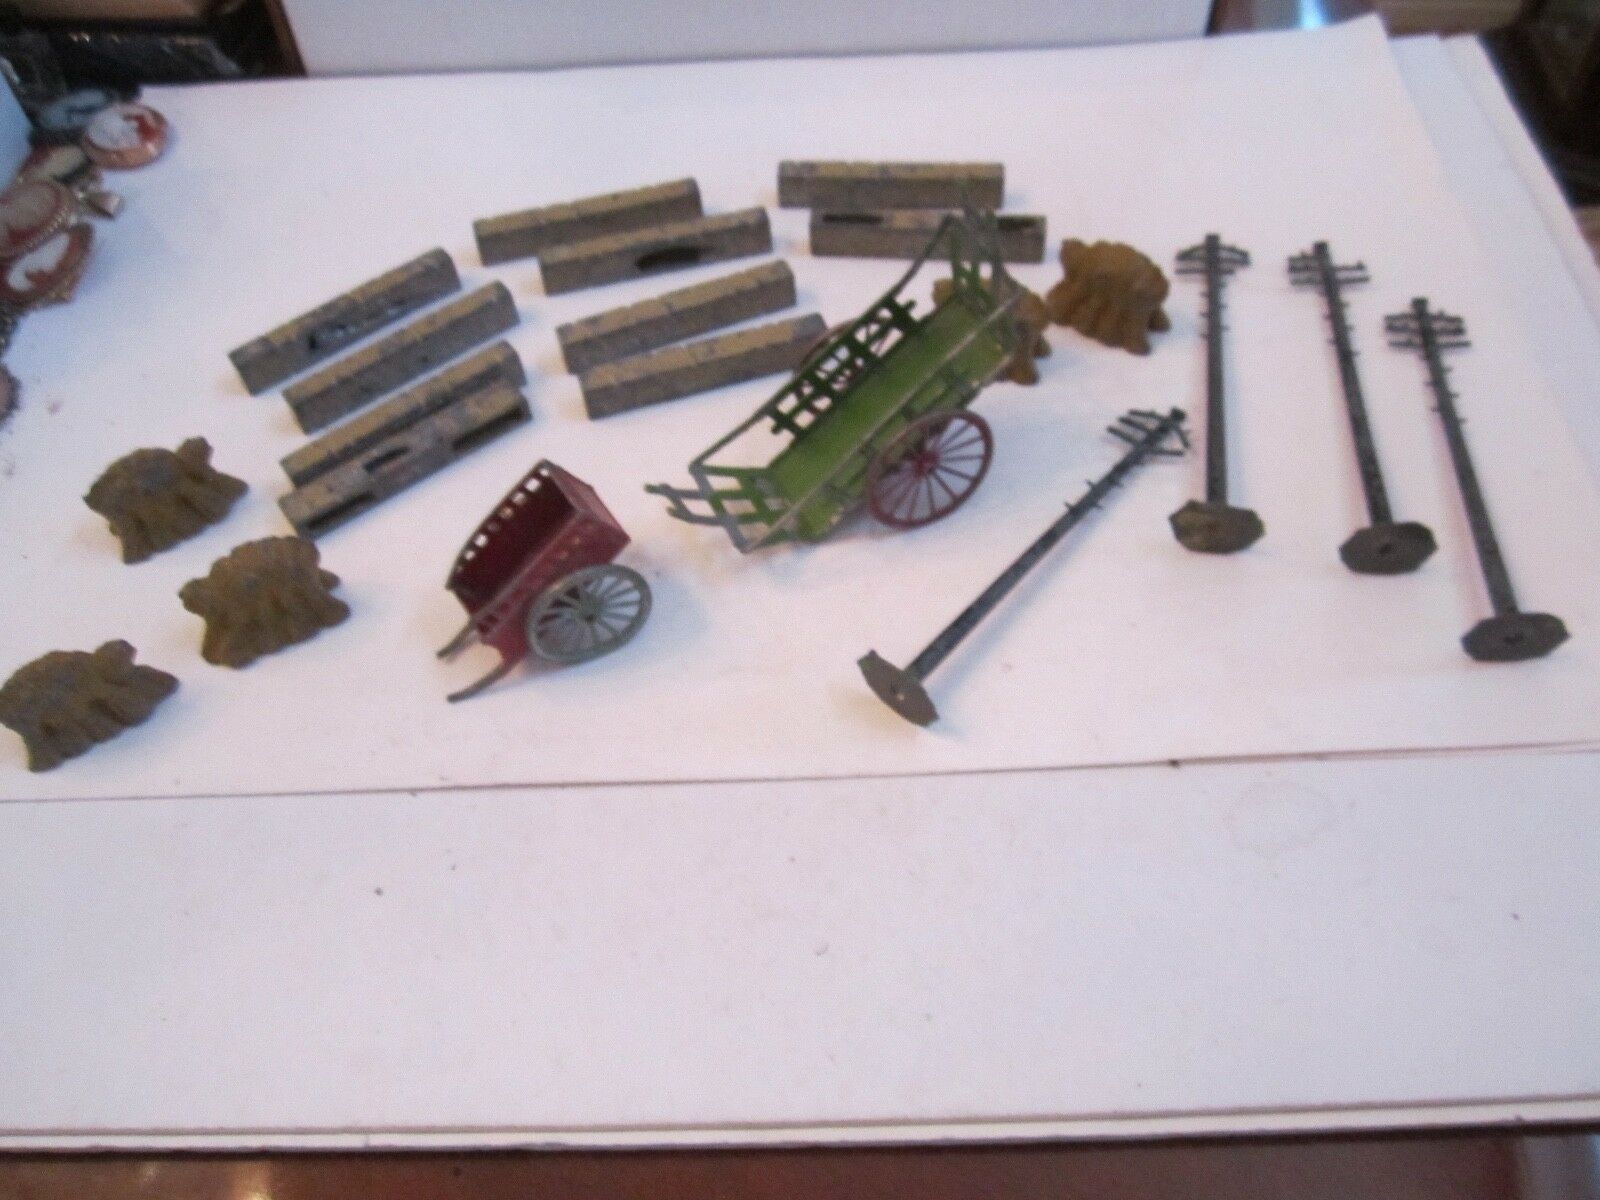 PRE WAR METAL TRAIN ACCESSORIES - CARTS, BOULDERS & MORE - MADE IN FRANCE OFC-4